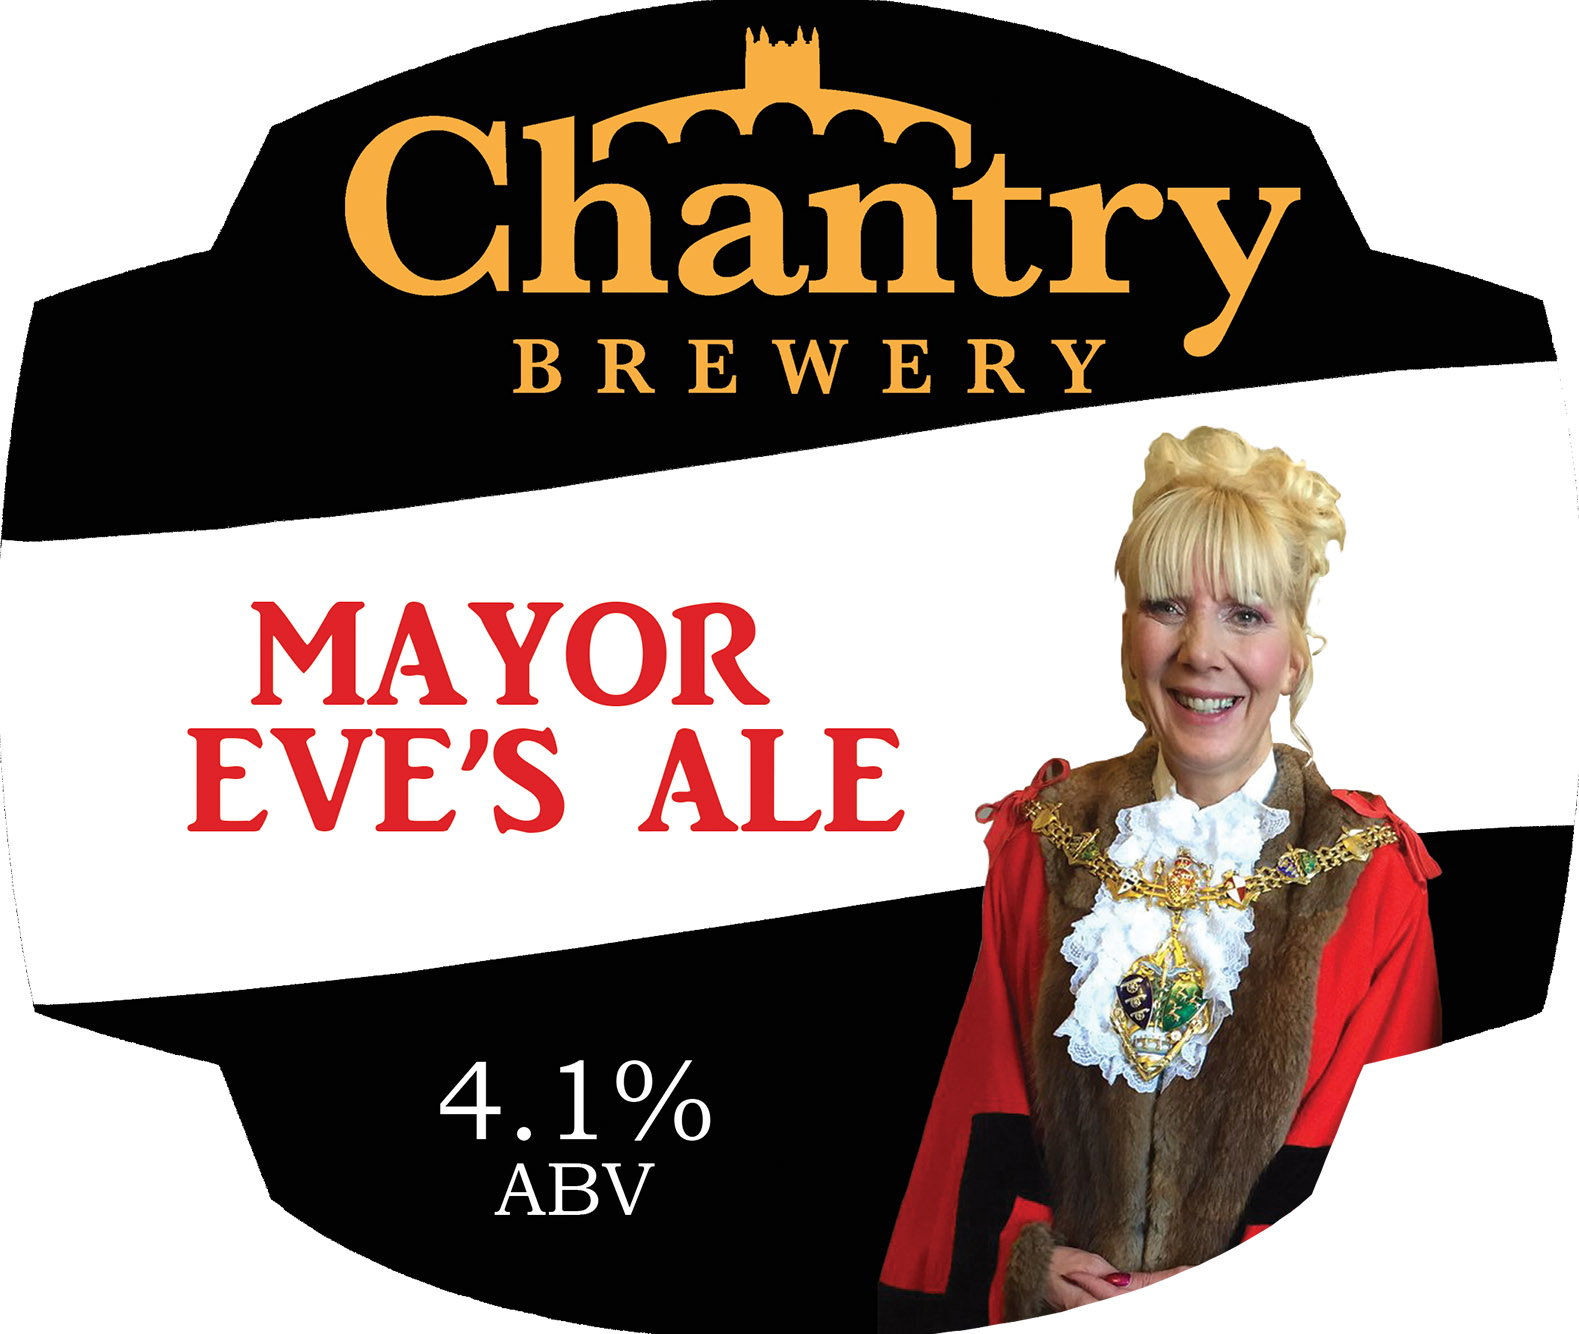 Chantry Brewery Mayor Eve